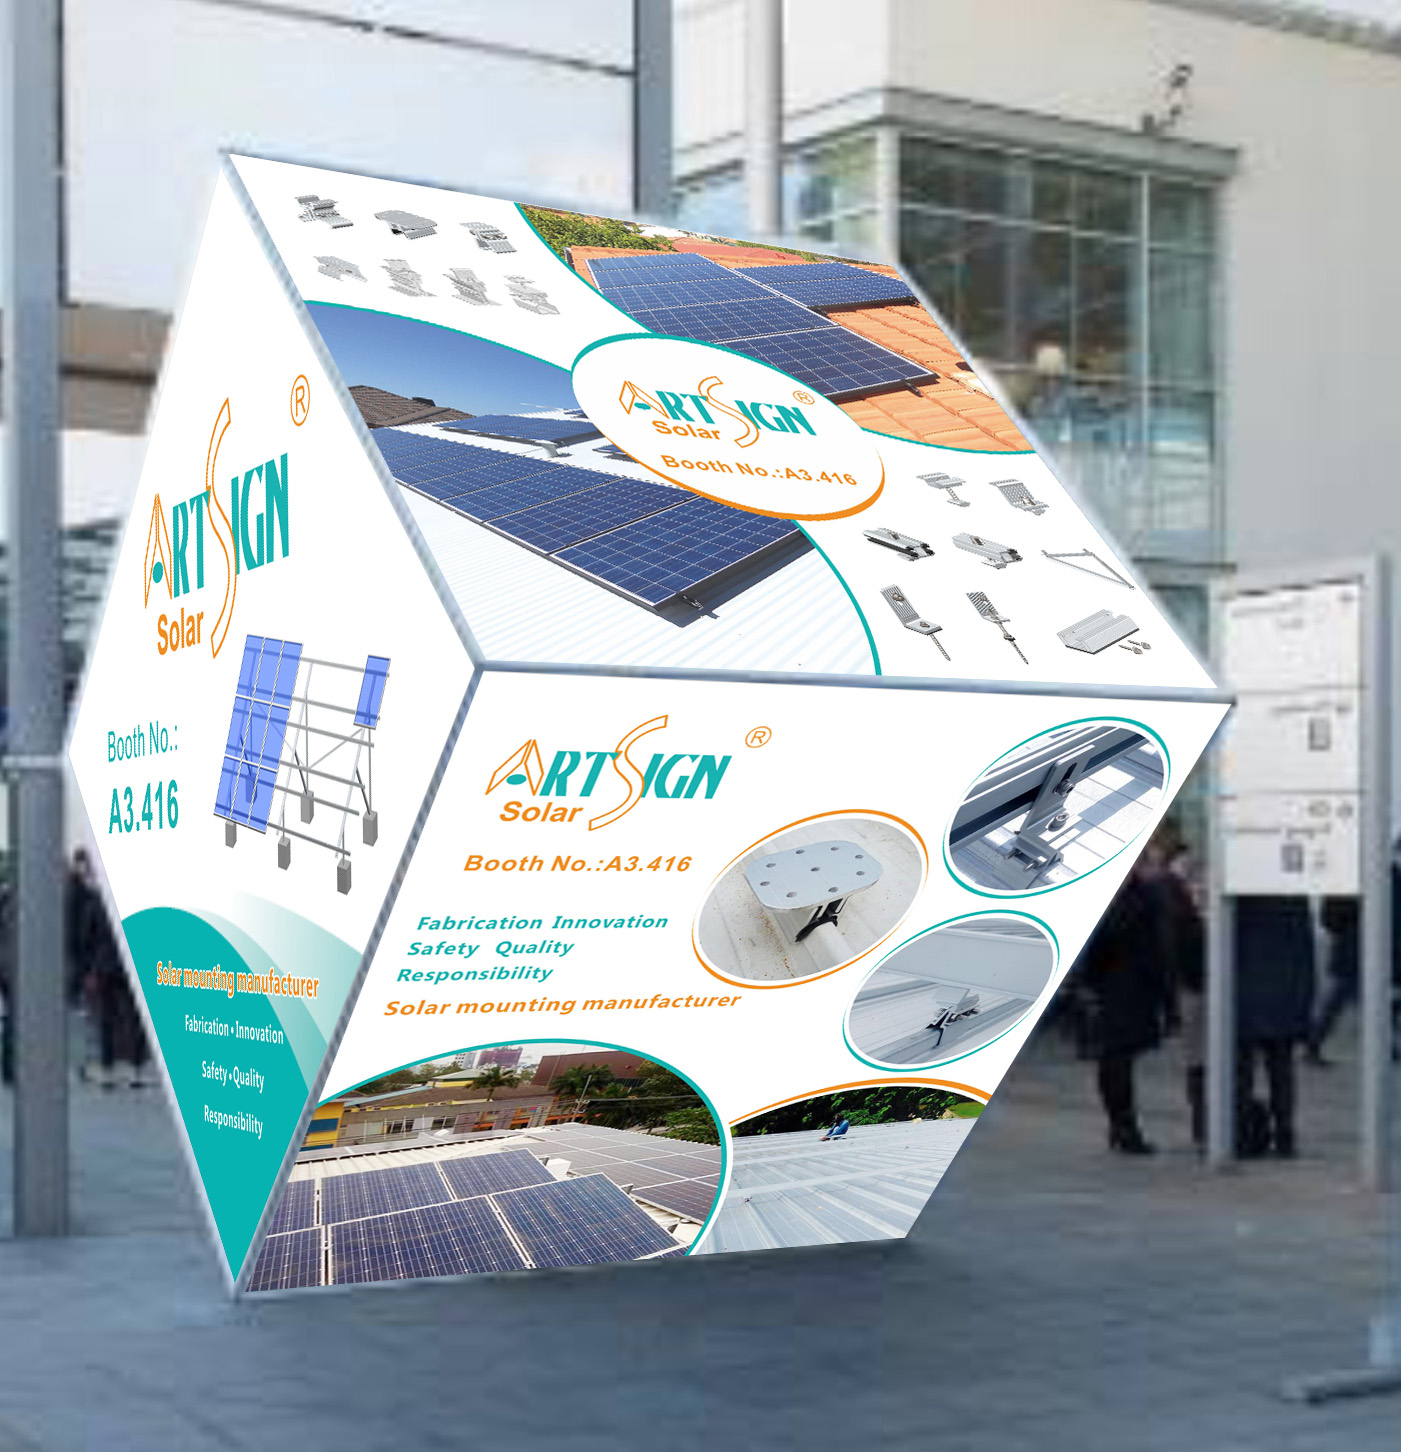 ART SIGN Welcomes you to join our Intersolar Europe 2018 on 20-22nd June